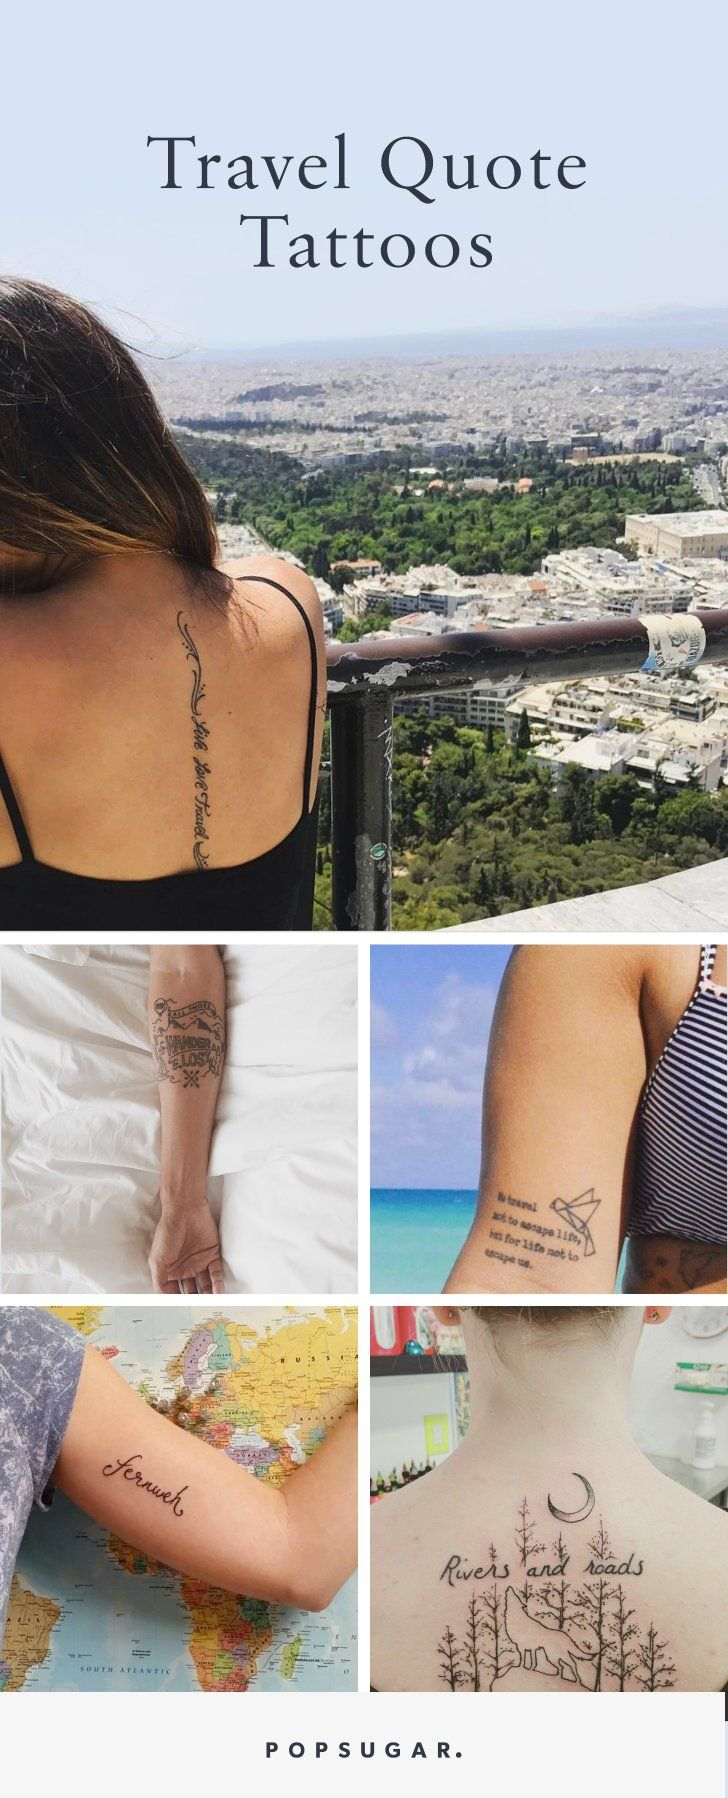 30 Travel Quote Tattoos That Will Make You Want To Plan A Trip Asap Tattoo Quotes Travel Quotes Travel Tattoo